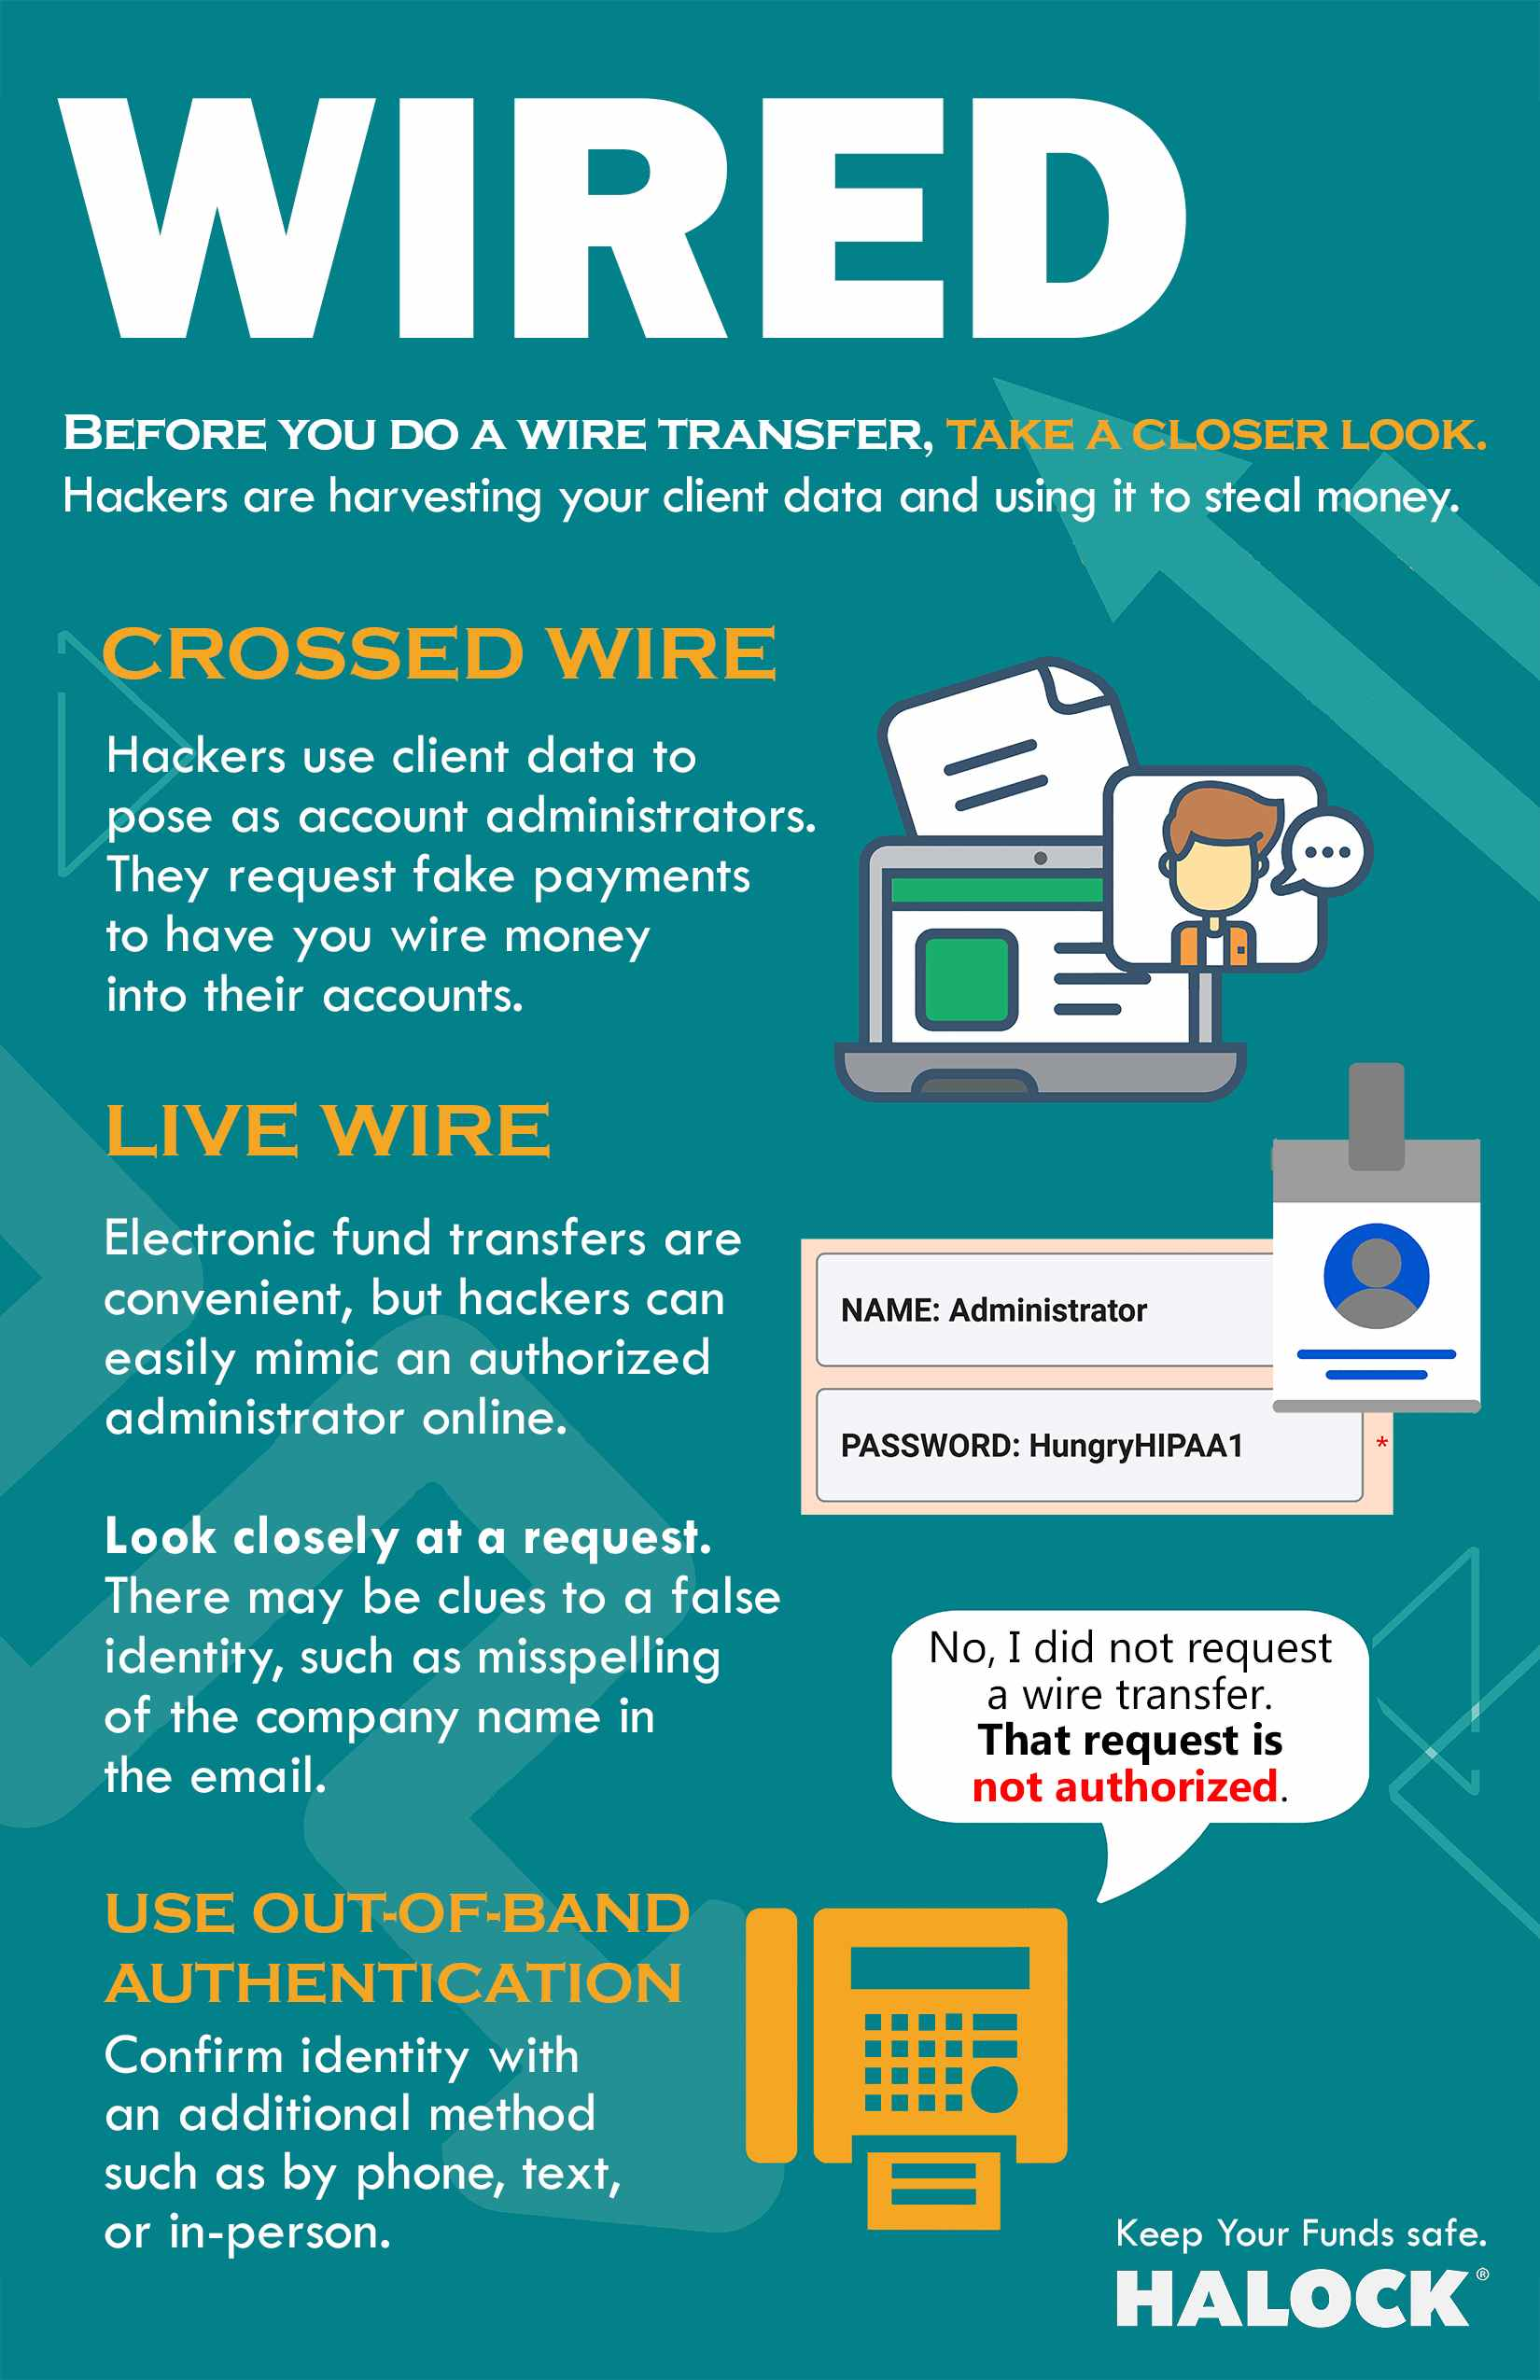 HALOCK Financial Services Infosec Poster WIRED,